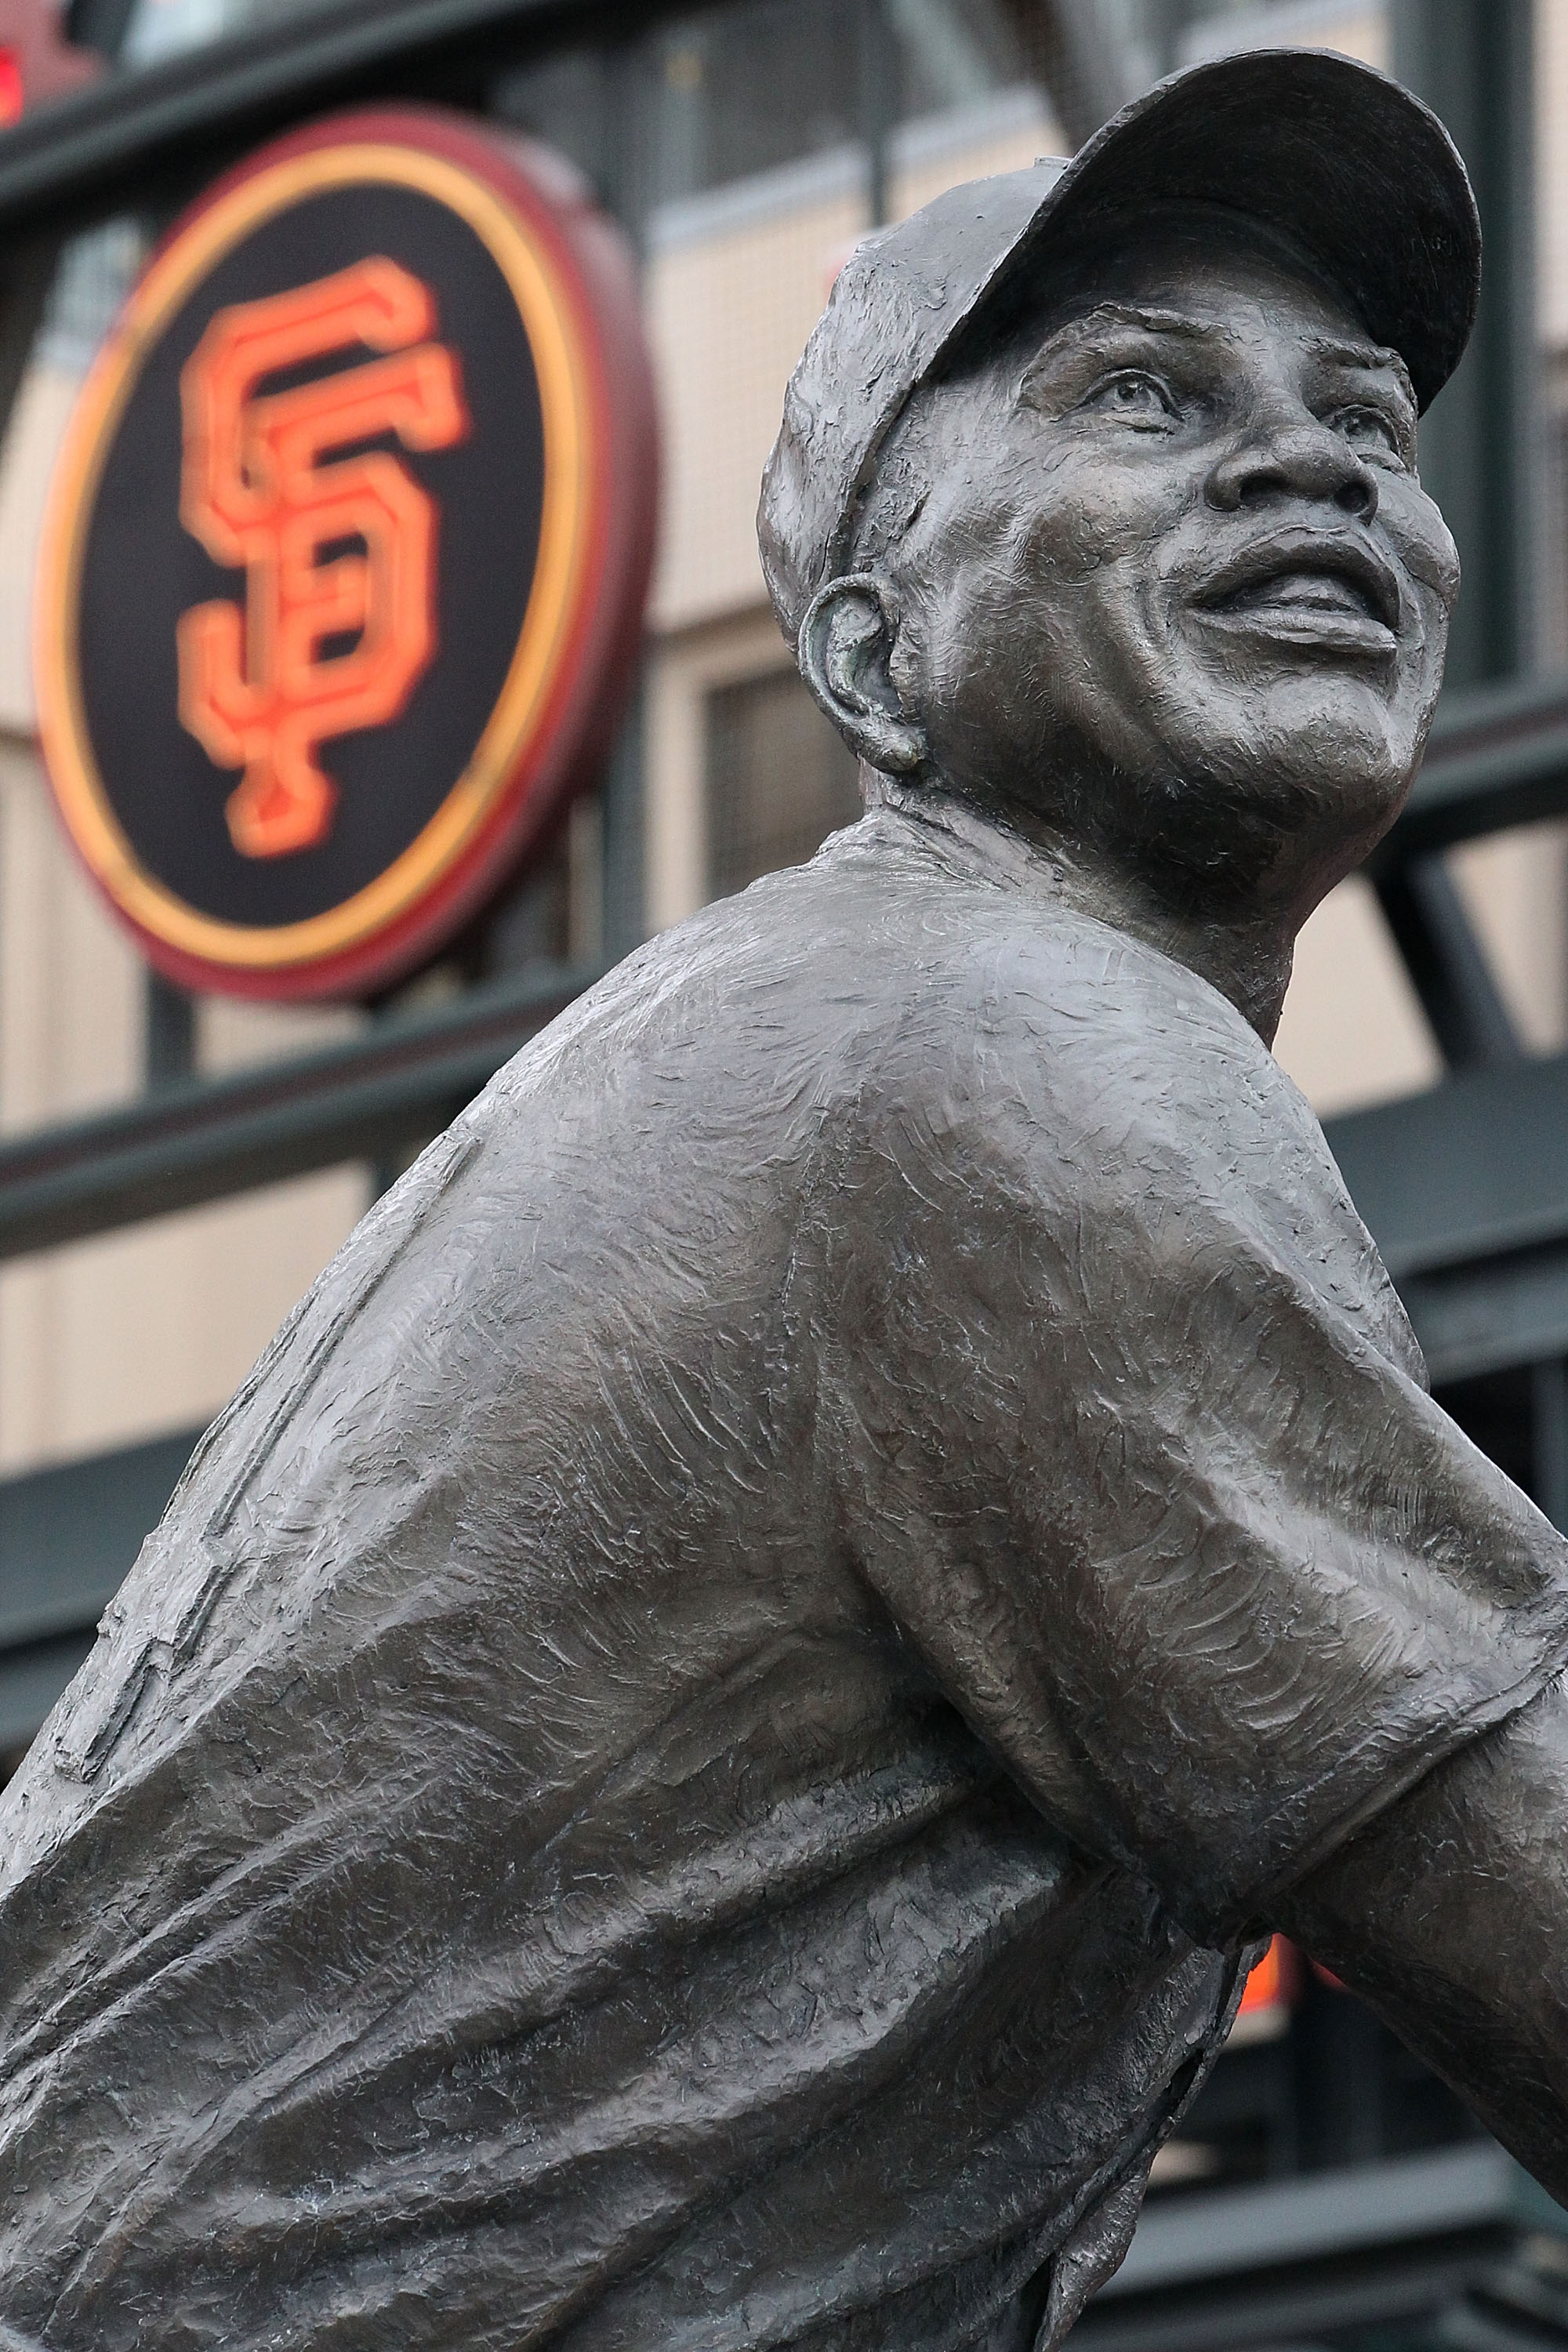 SAN FRANCISCO - OCTOBER 28:  A statue of baseball legend Willie Mays in Willie Mays Plaza before Game Two of the 2010 MLB World Series between the San Francisco Giants and the Texas Rangers at AT&T Park on October 28, 2010 in San Francisco, California.  (